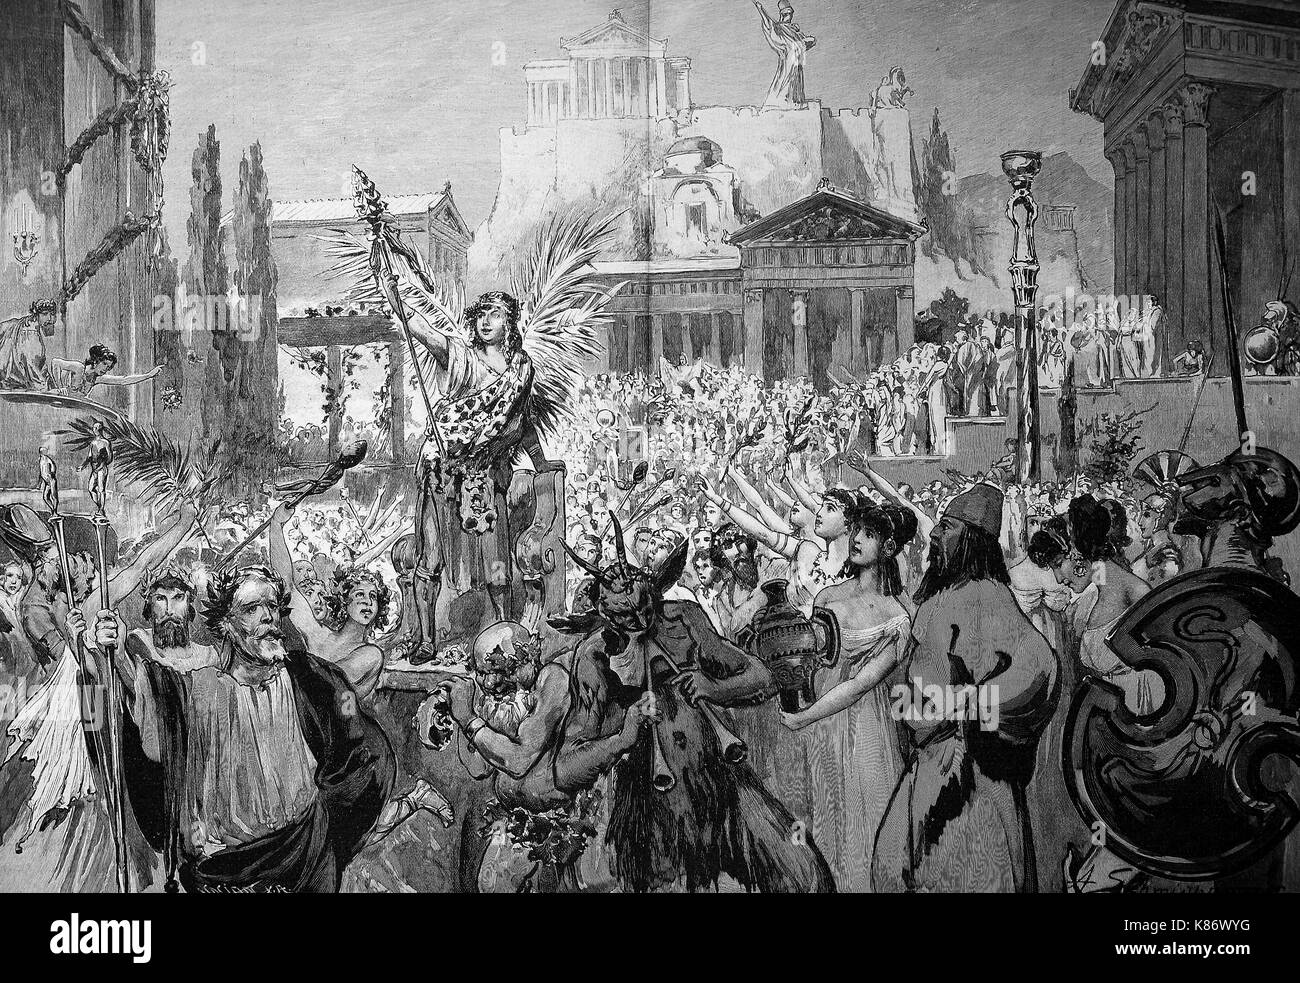 the artist festival 1898 at Munich, Bavaria, Germany, people at the procession Bacchus, celebration, Digital improved Stock Photo